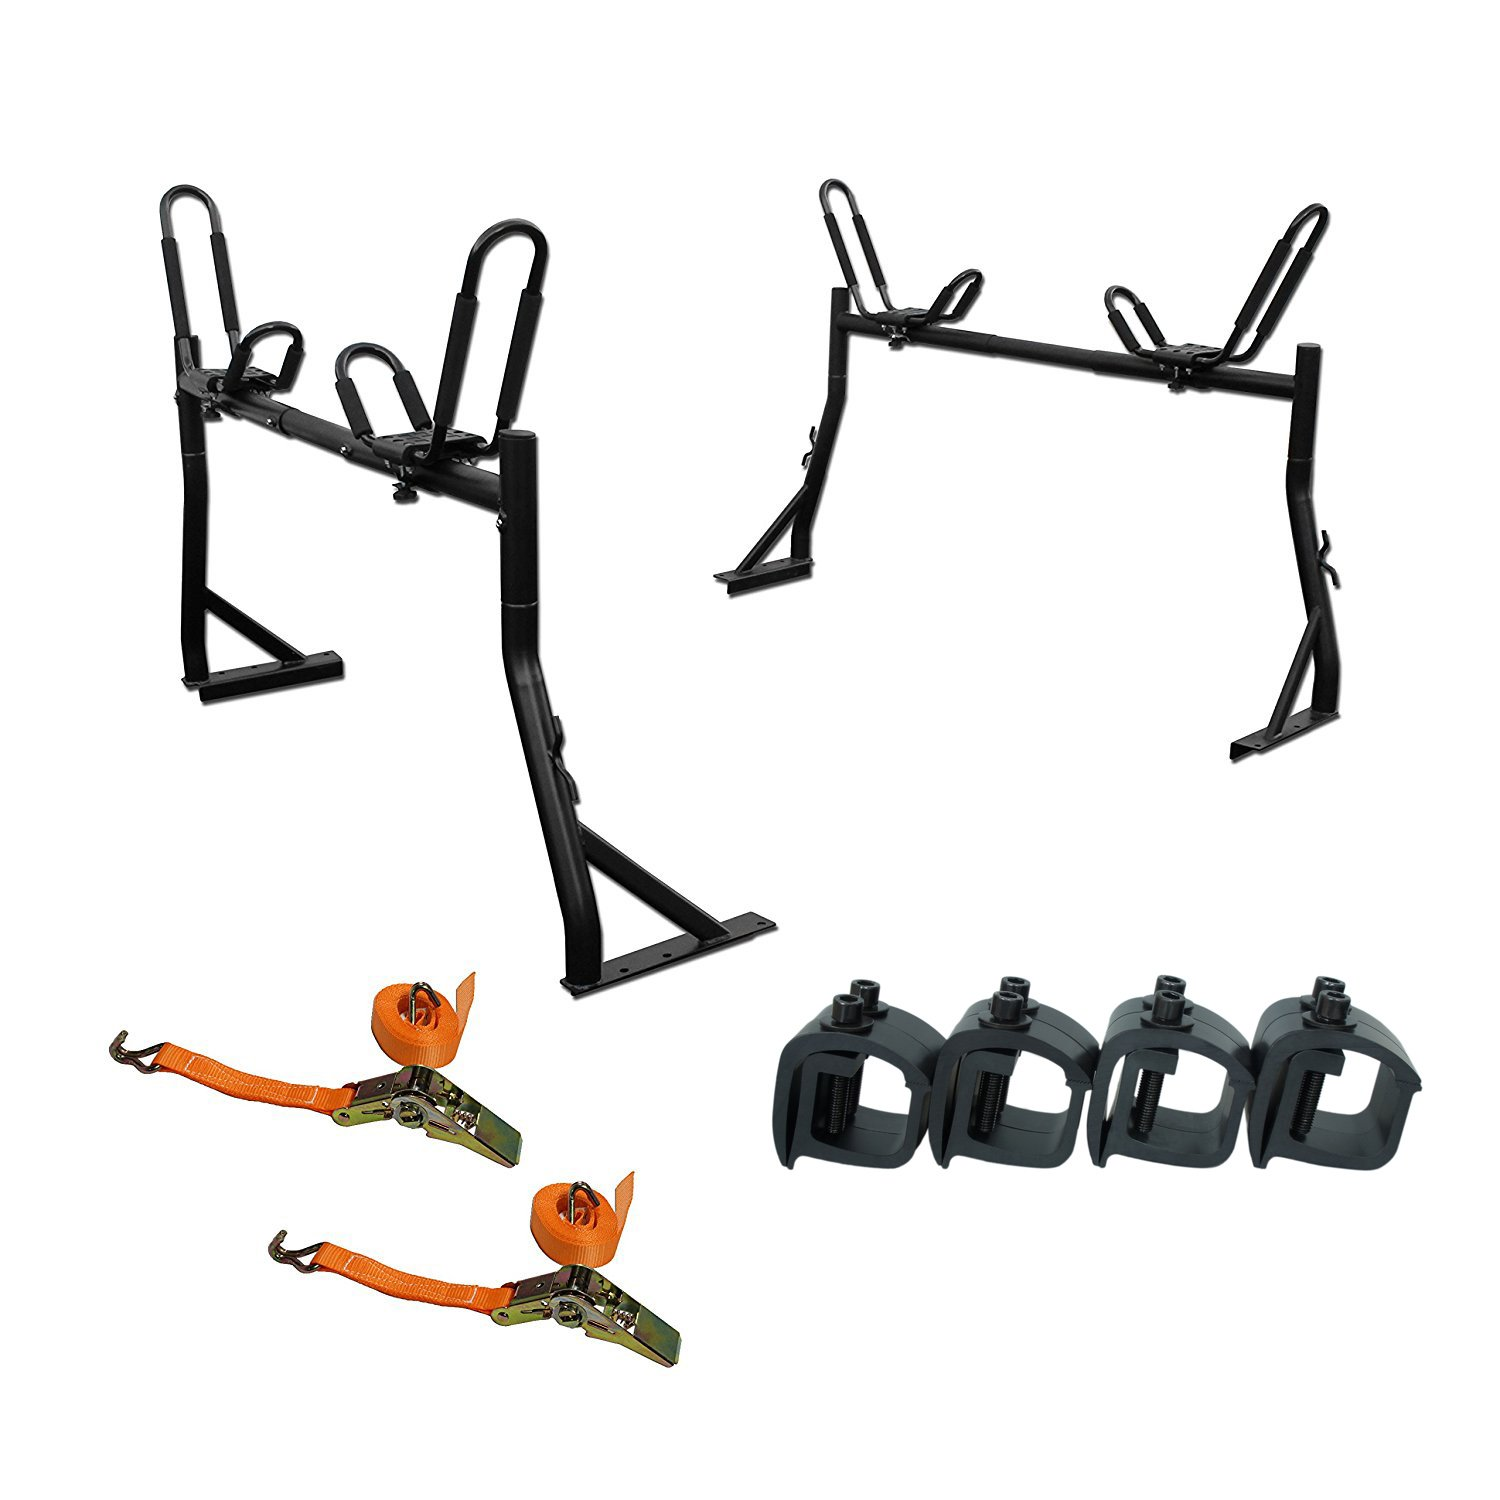 X35 Truck Rack with (4) Non-Drilling C-Clamps + (2sets) Kayak J-Racks + (2) Heavy Duty 1 Ton Ratcheting Strap by AA Products Inc.